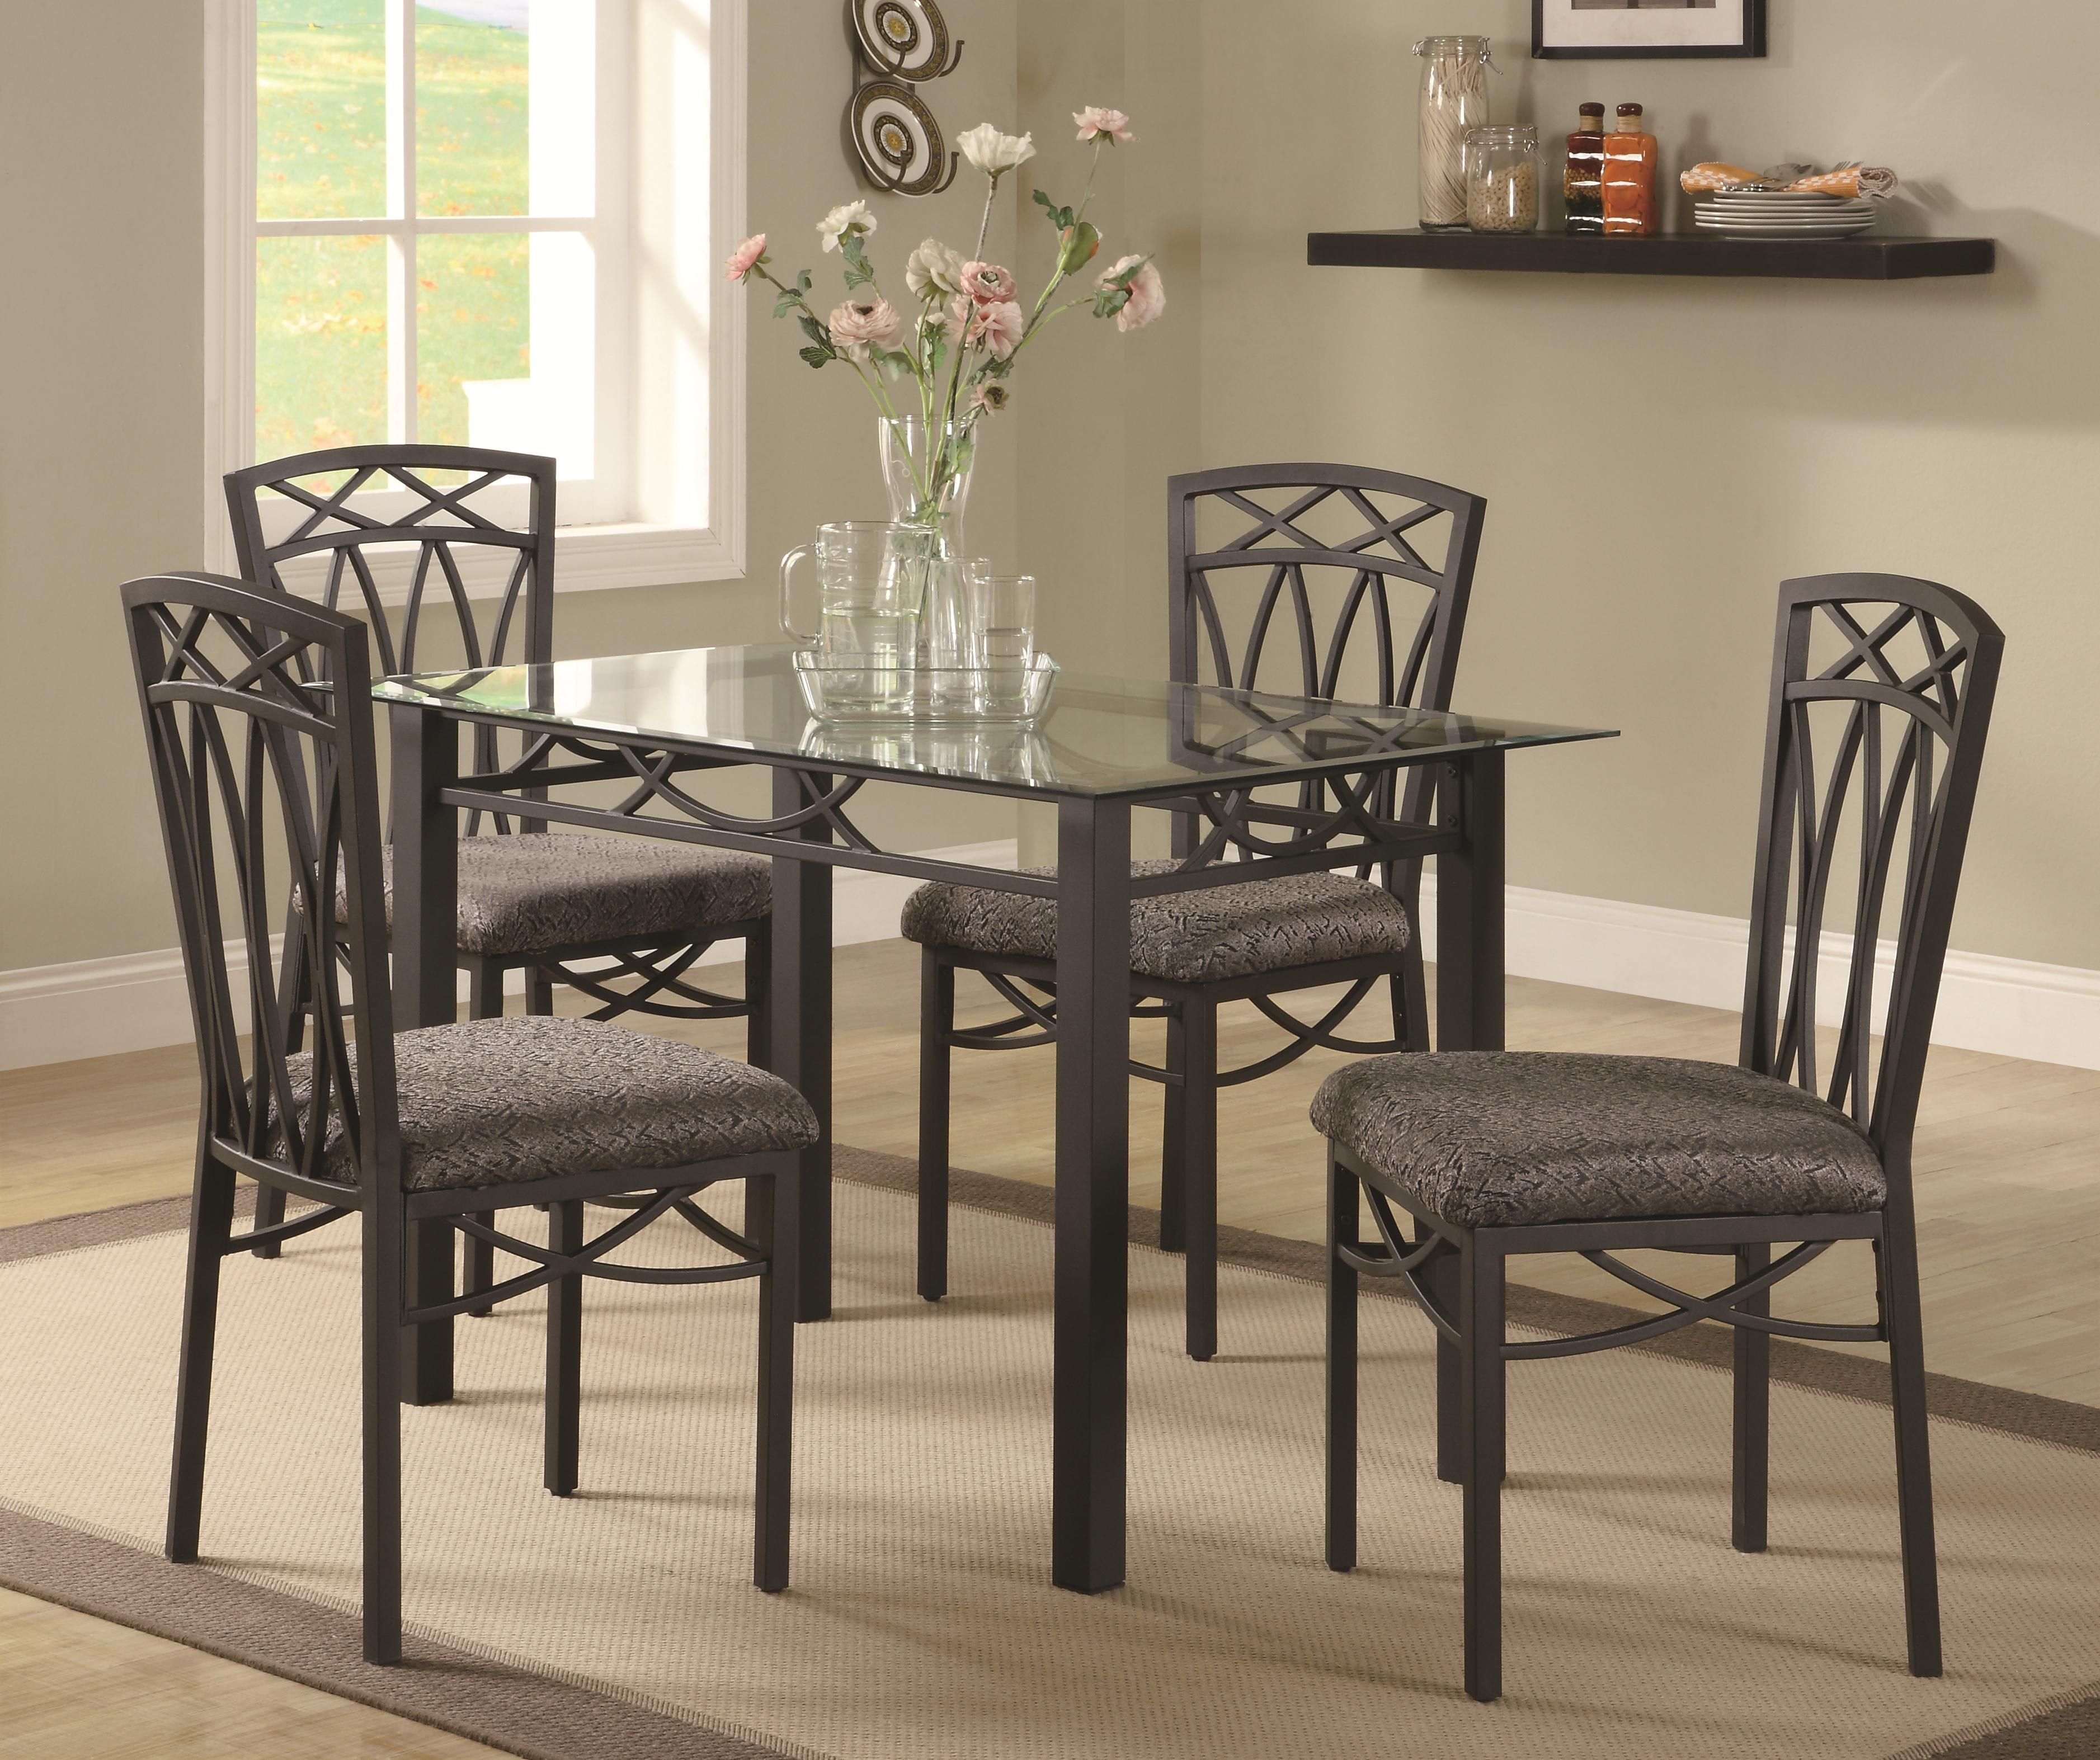 Cheap Glass Dining Room Sets: Blake 5 Piece Dining Table Set By Coaster At DREAM HOME